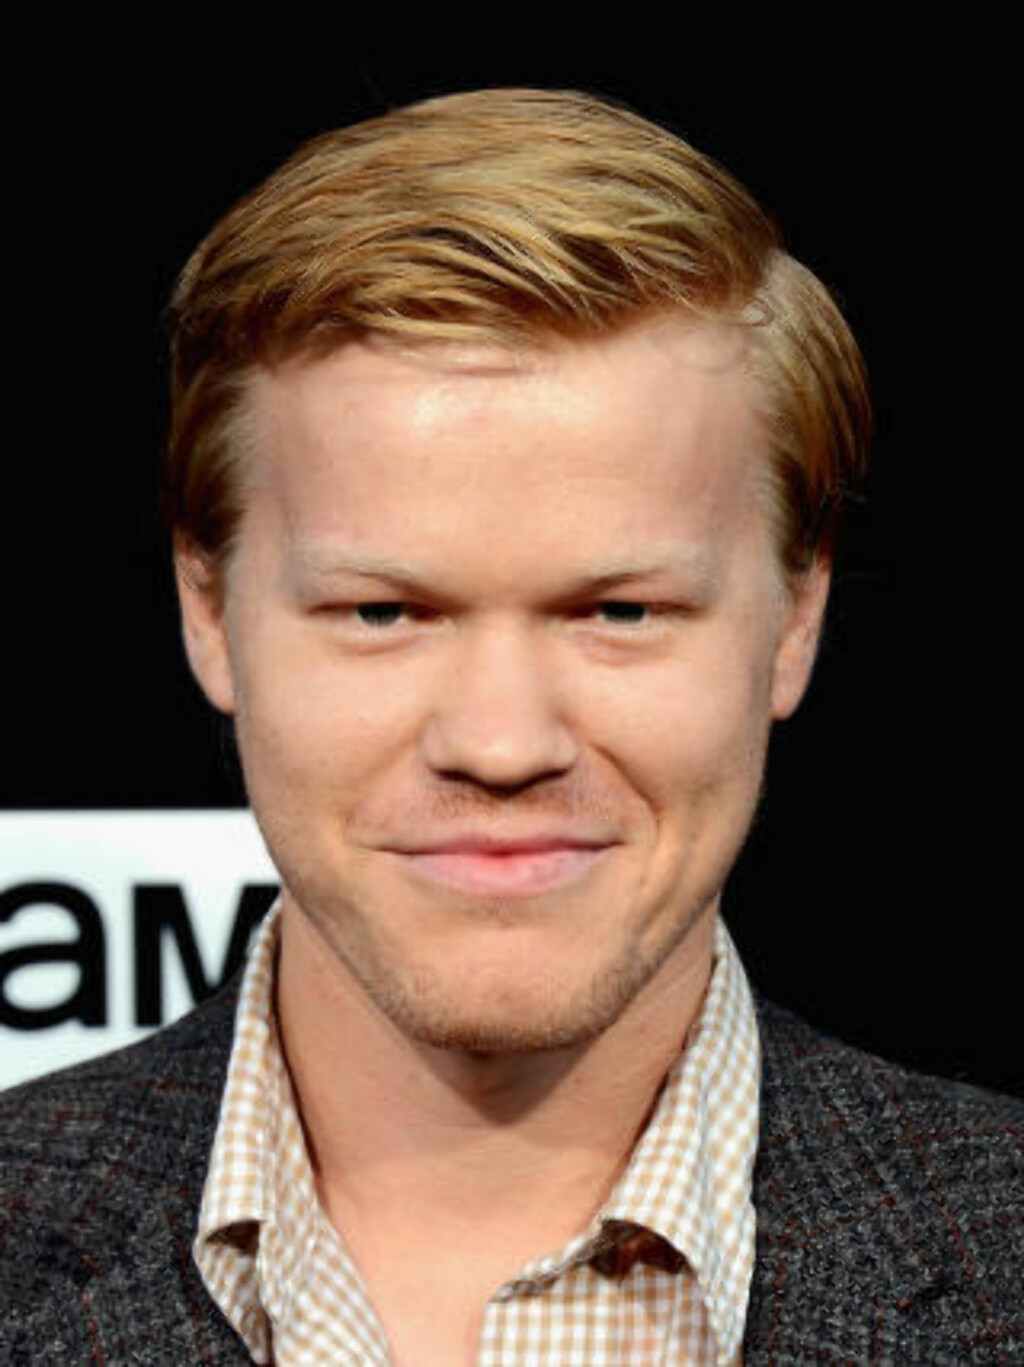 SPILLER EKTEMANN: Jesse Plemons. Foto: NTB SCANPIX / Mark Davis/Getty Images/AFP